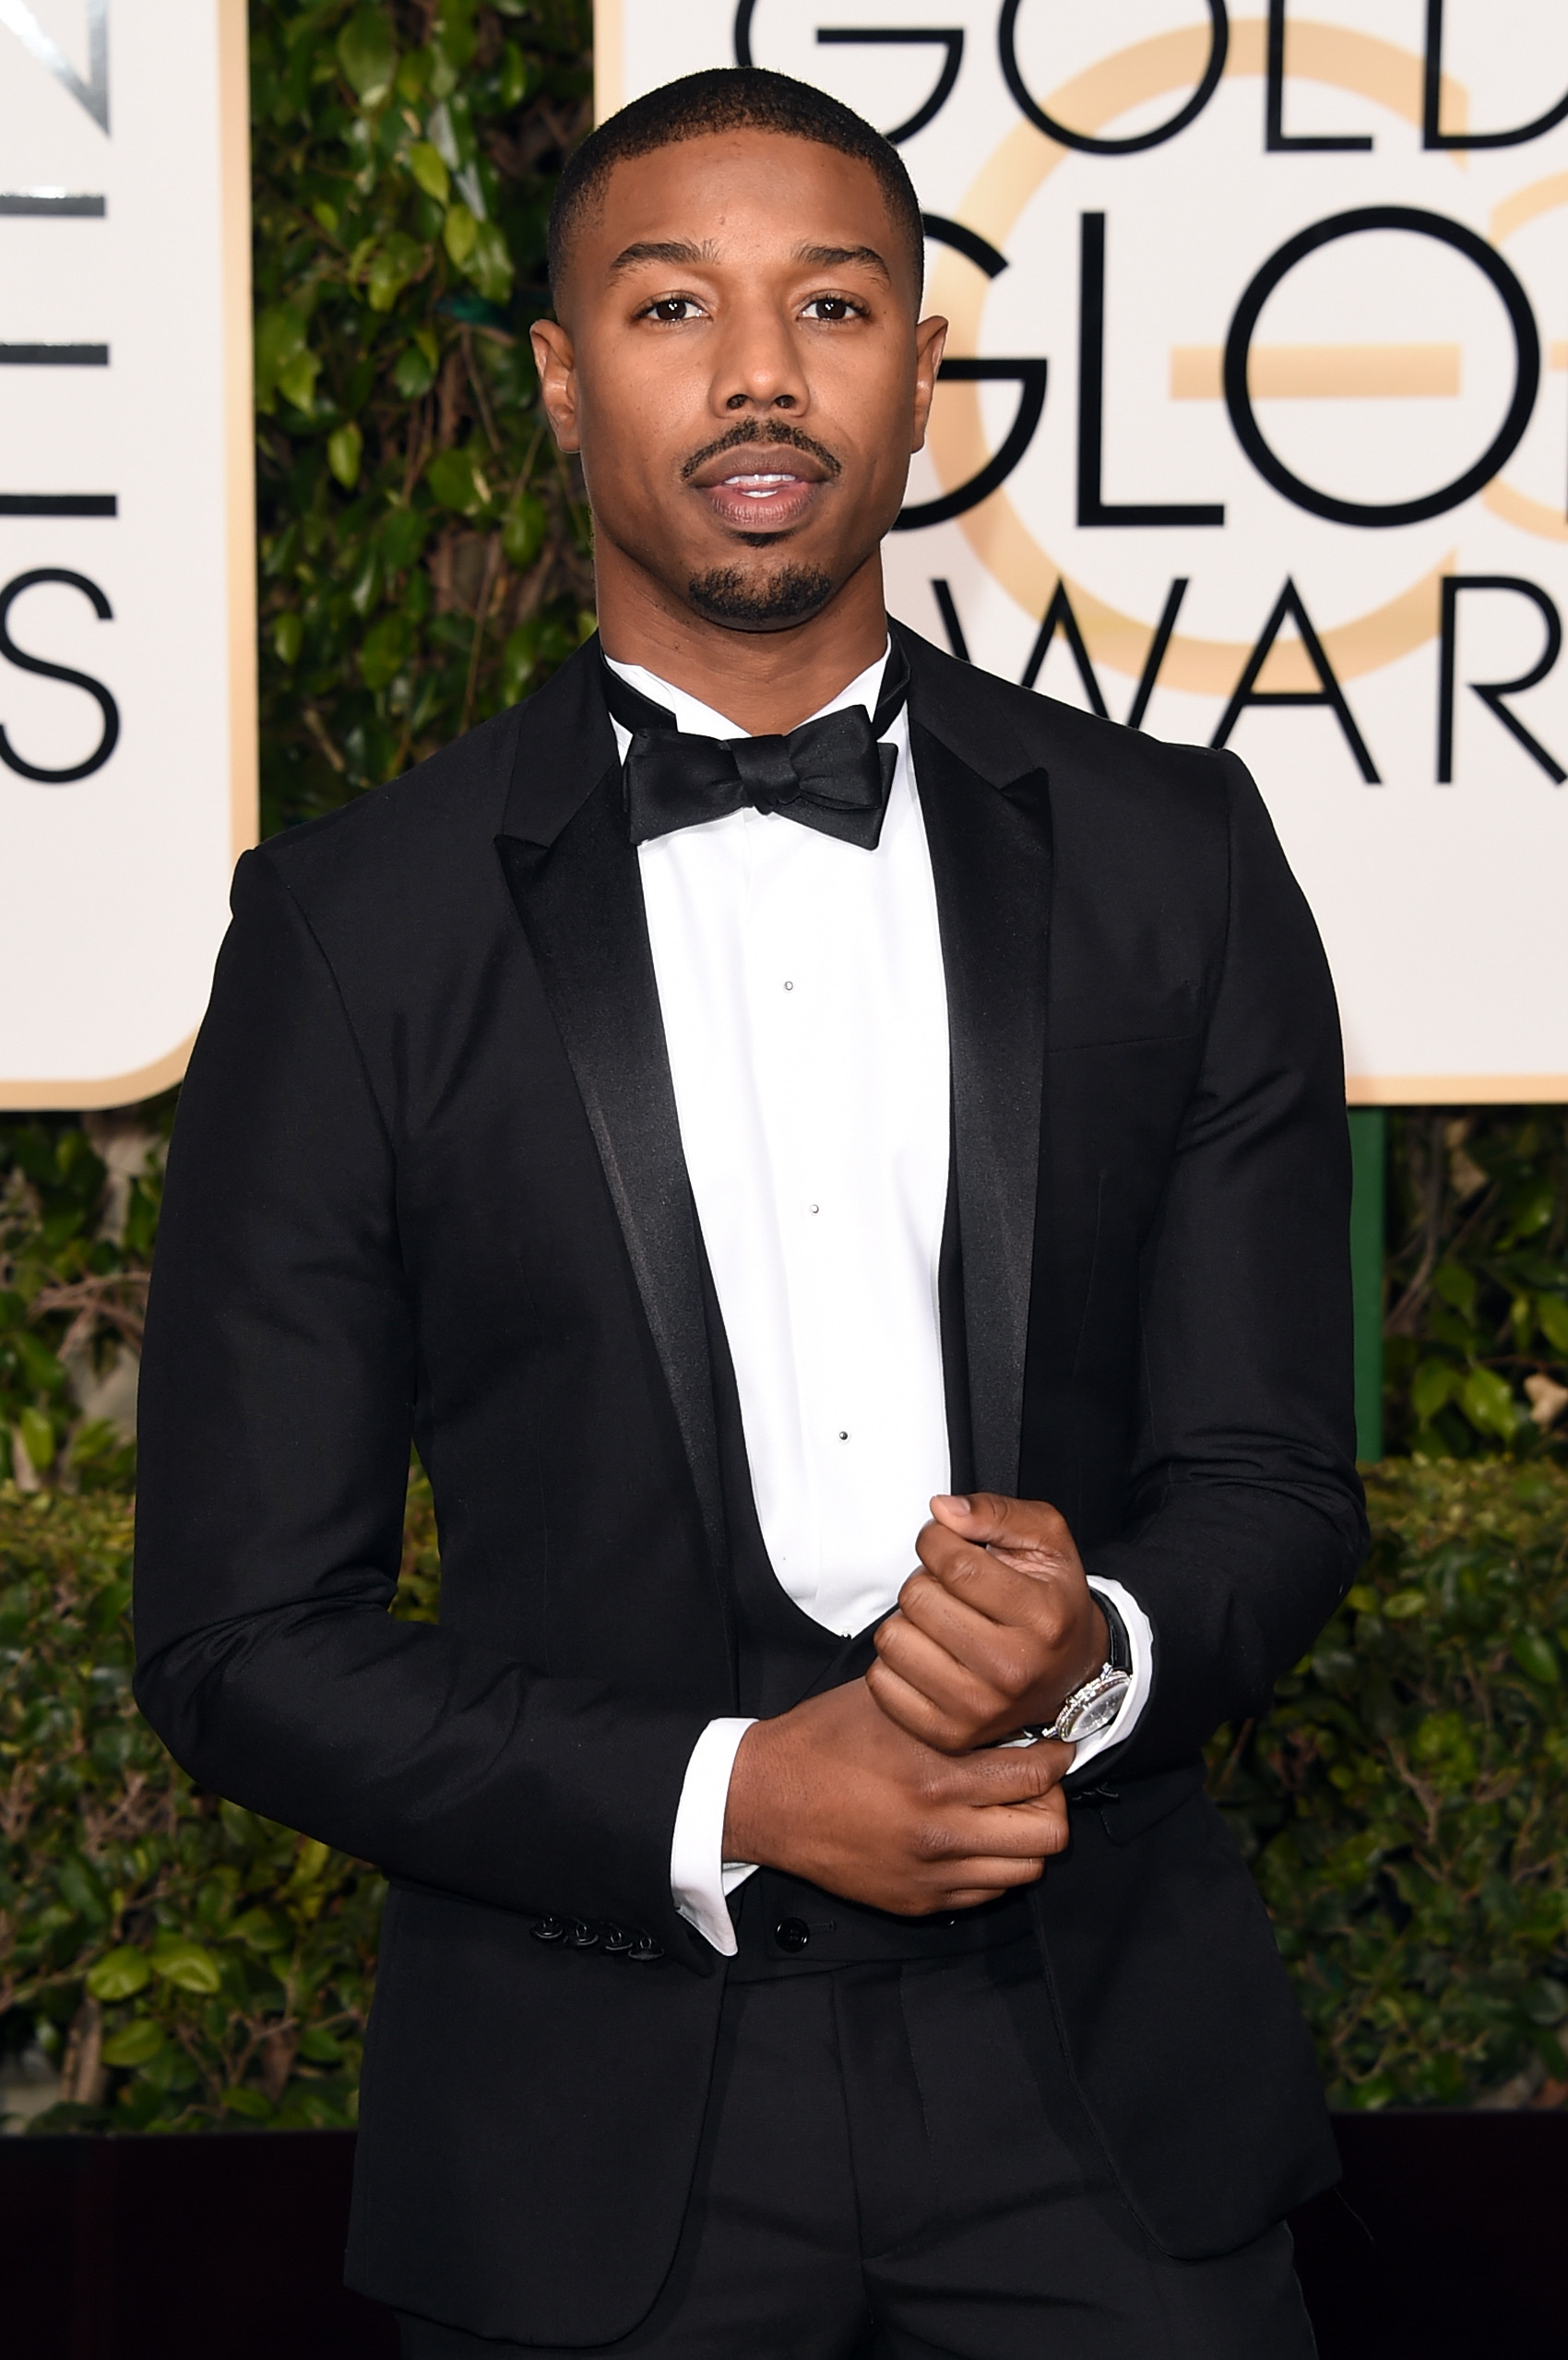 Michael B. Jordan steps into the ring for another round in 'Creed II'